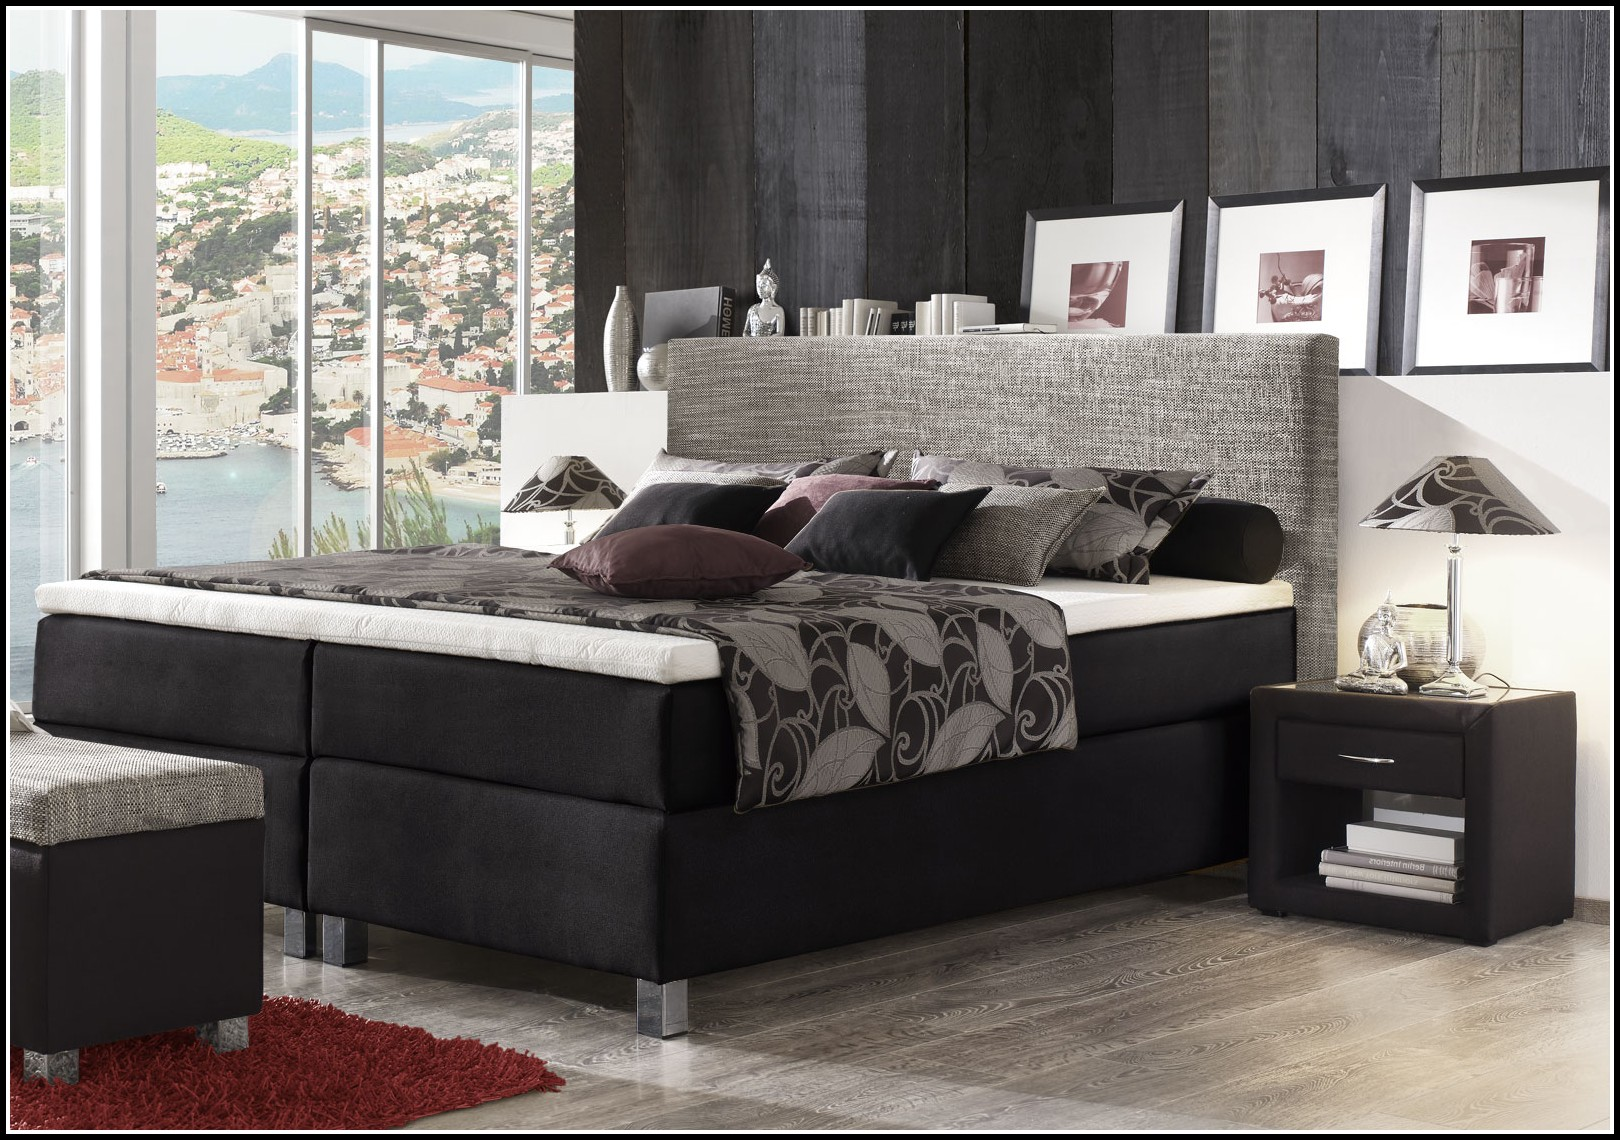 bett auf rechnung als neukunde download page beste. Black Bedroom Furniture Sets. Home Design Ideas